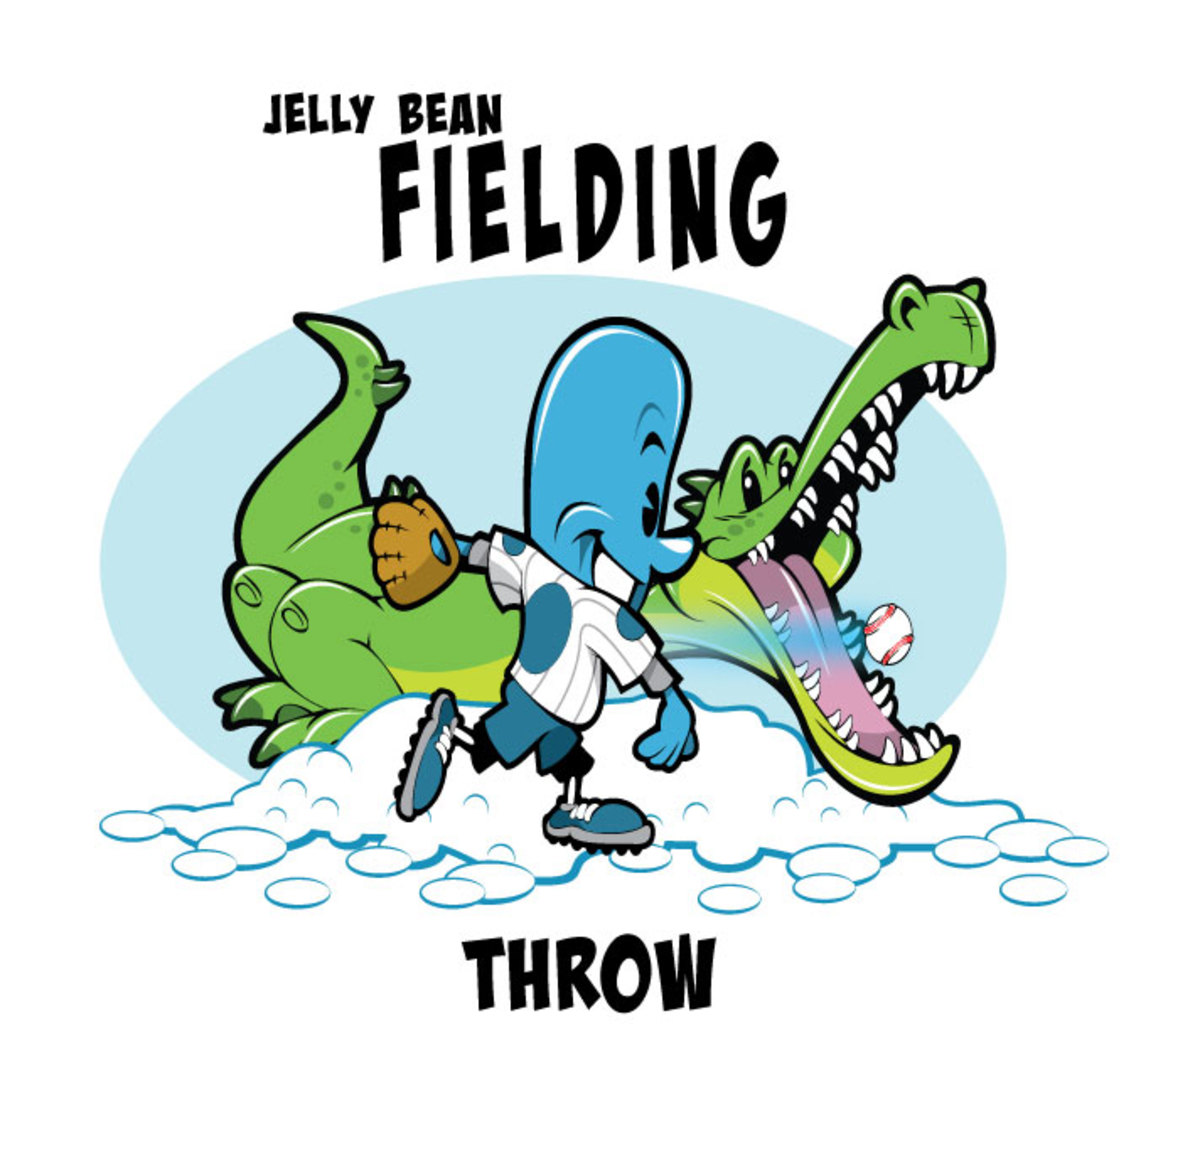 Jelly Bean throwing a baseball with an alligator